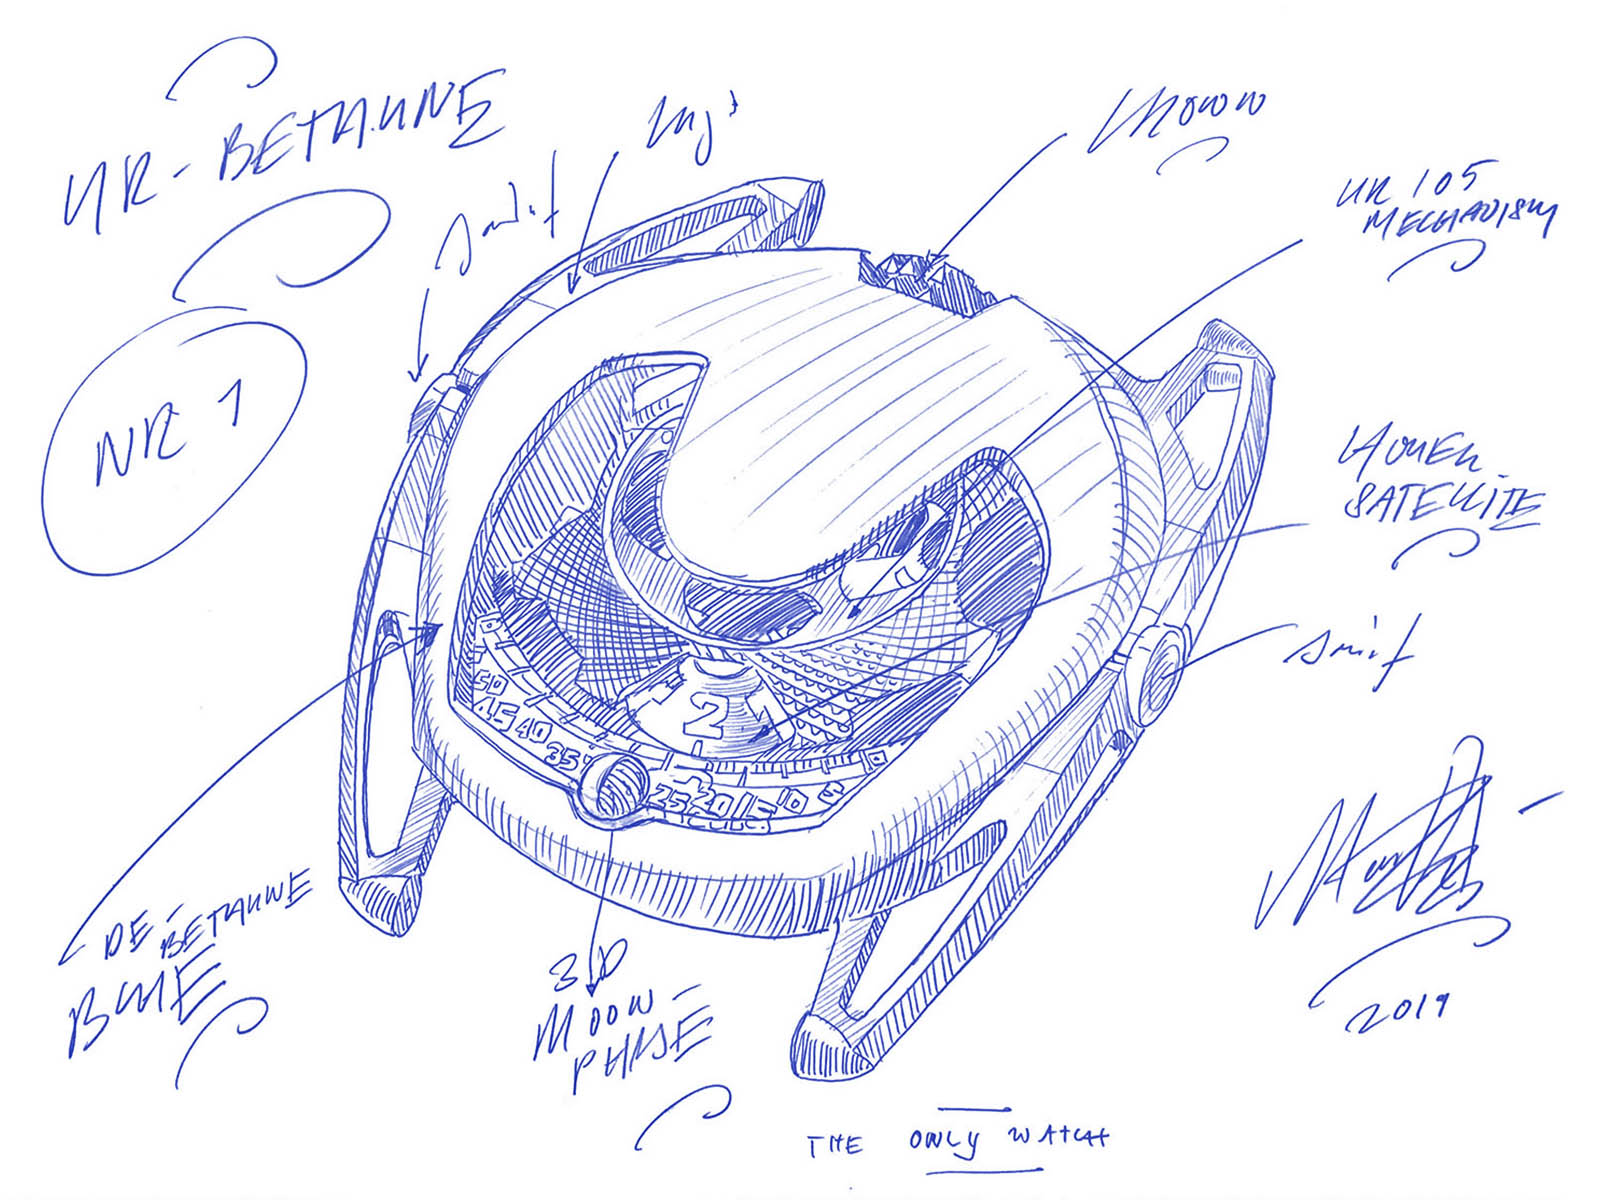 de-bethune-urwerk-only-watch-2019-7.jpg